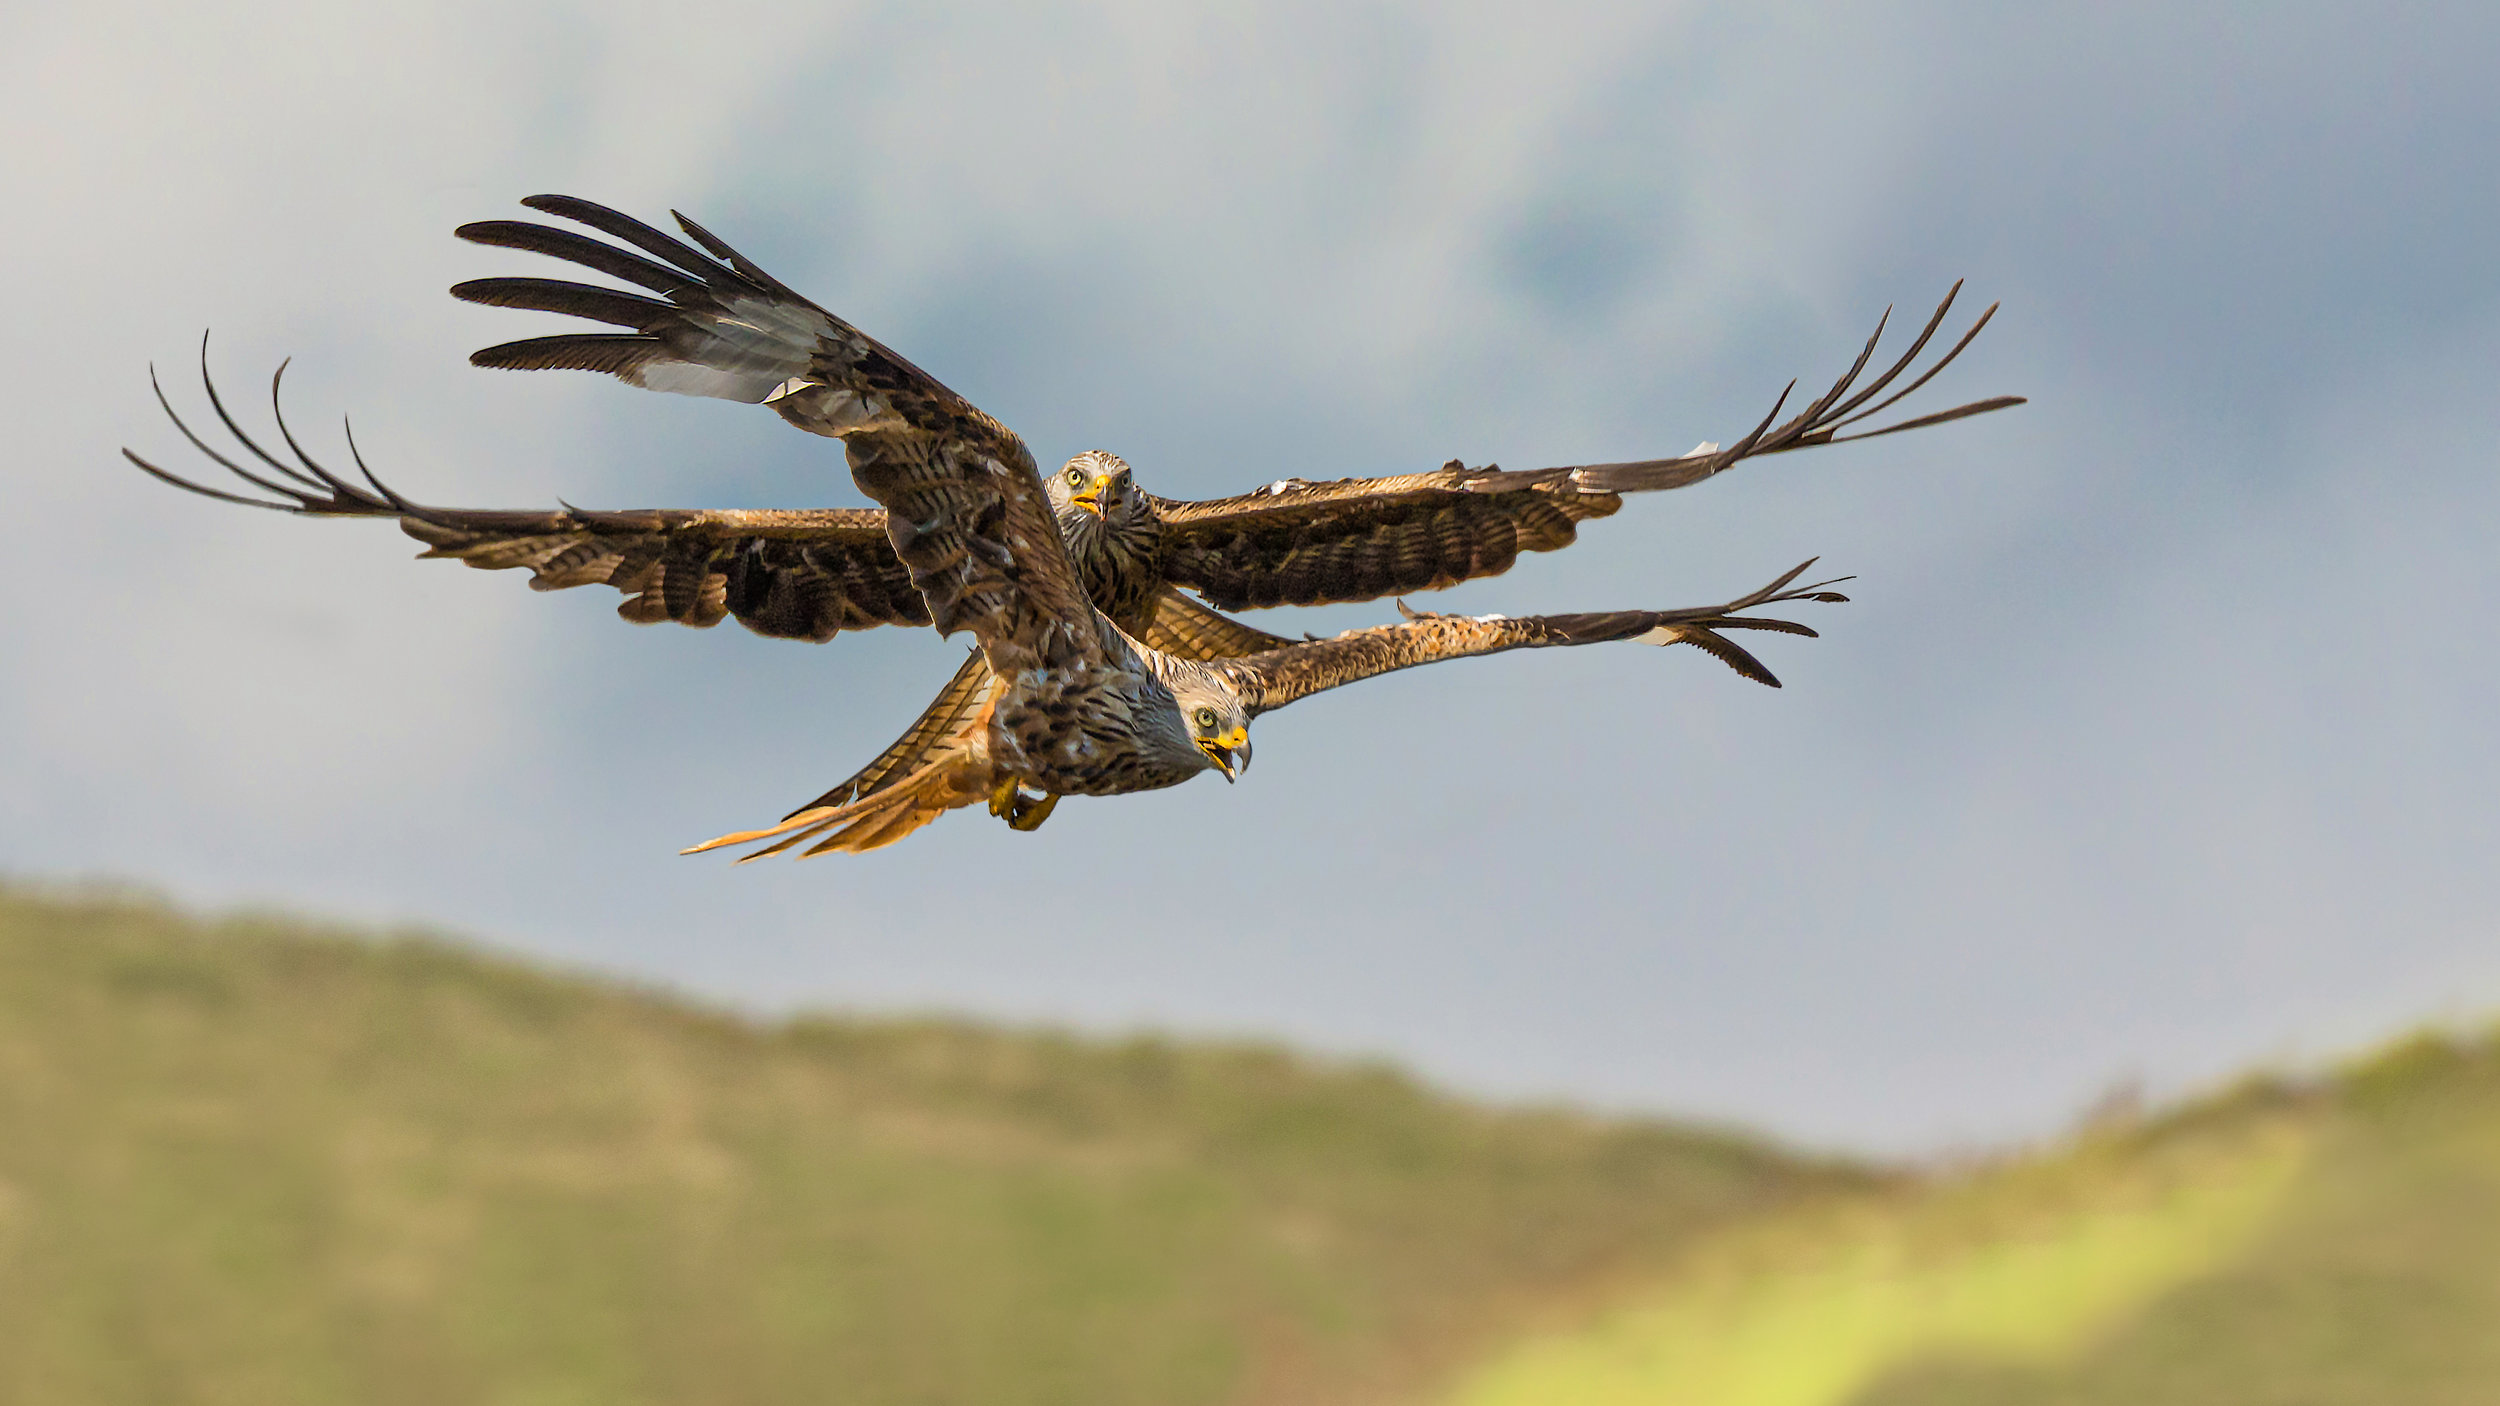 A pair of Red KItes #2